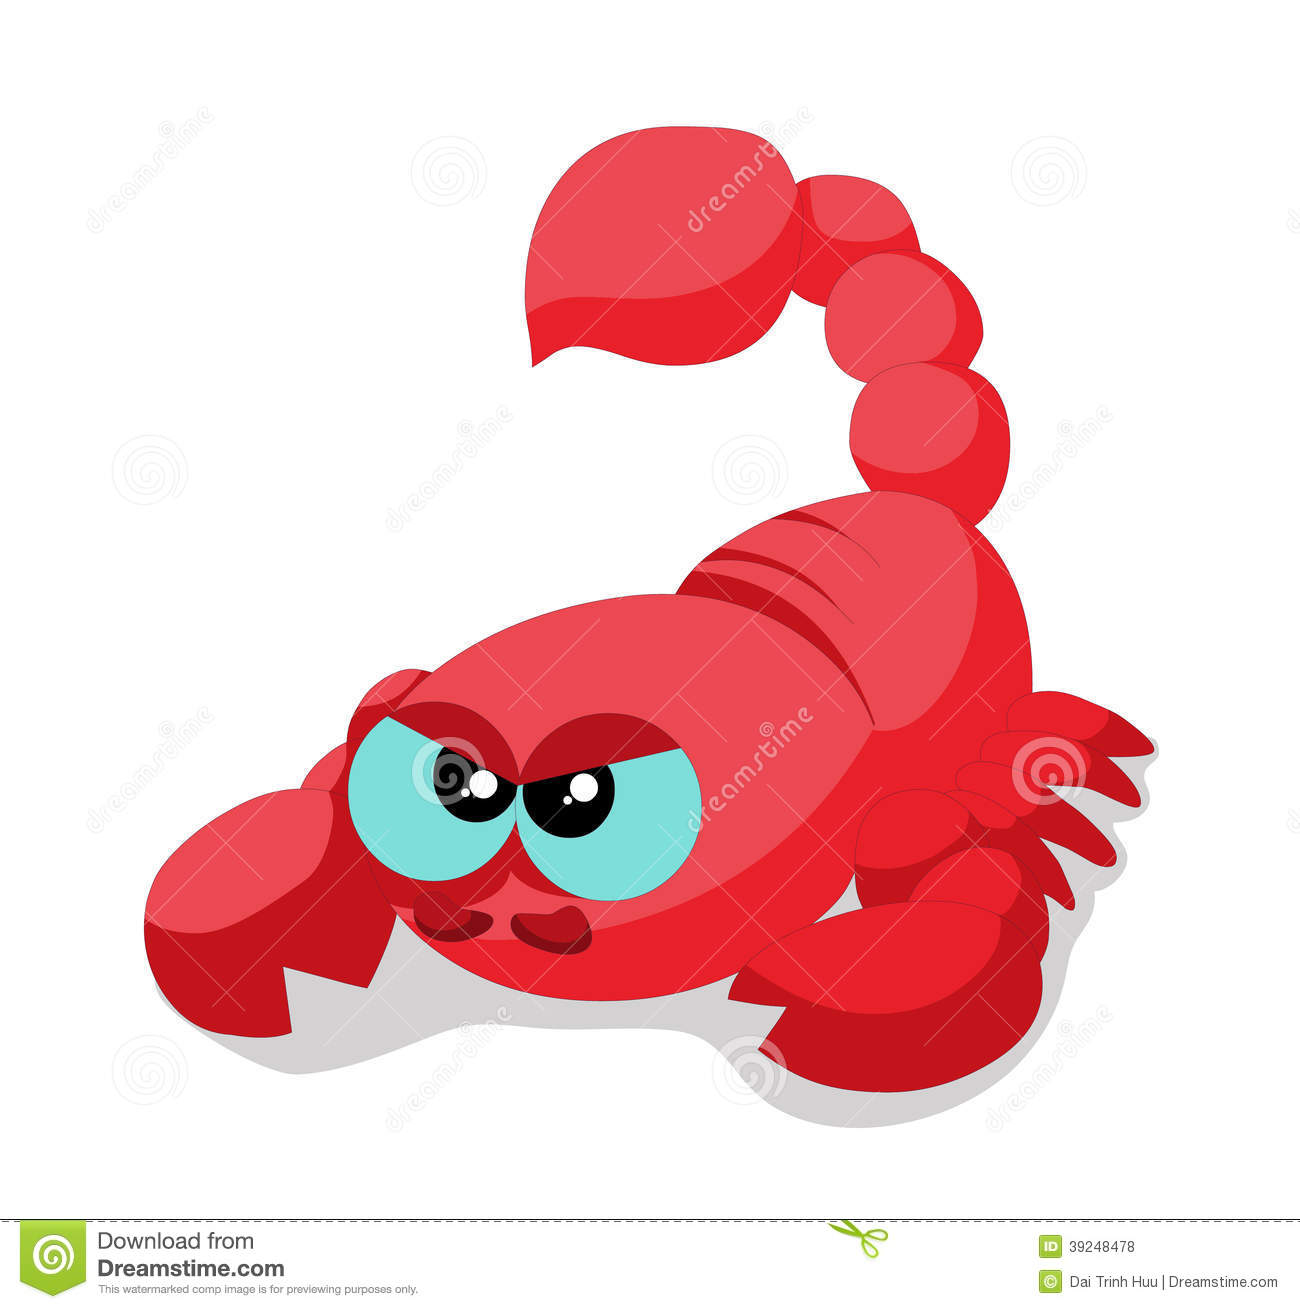 Scorpion So Cute Stock Vector - Image: 39248478